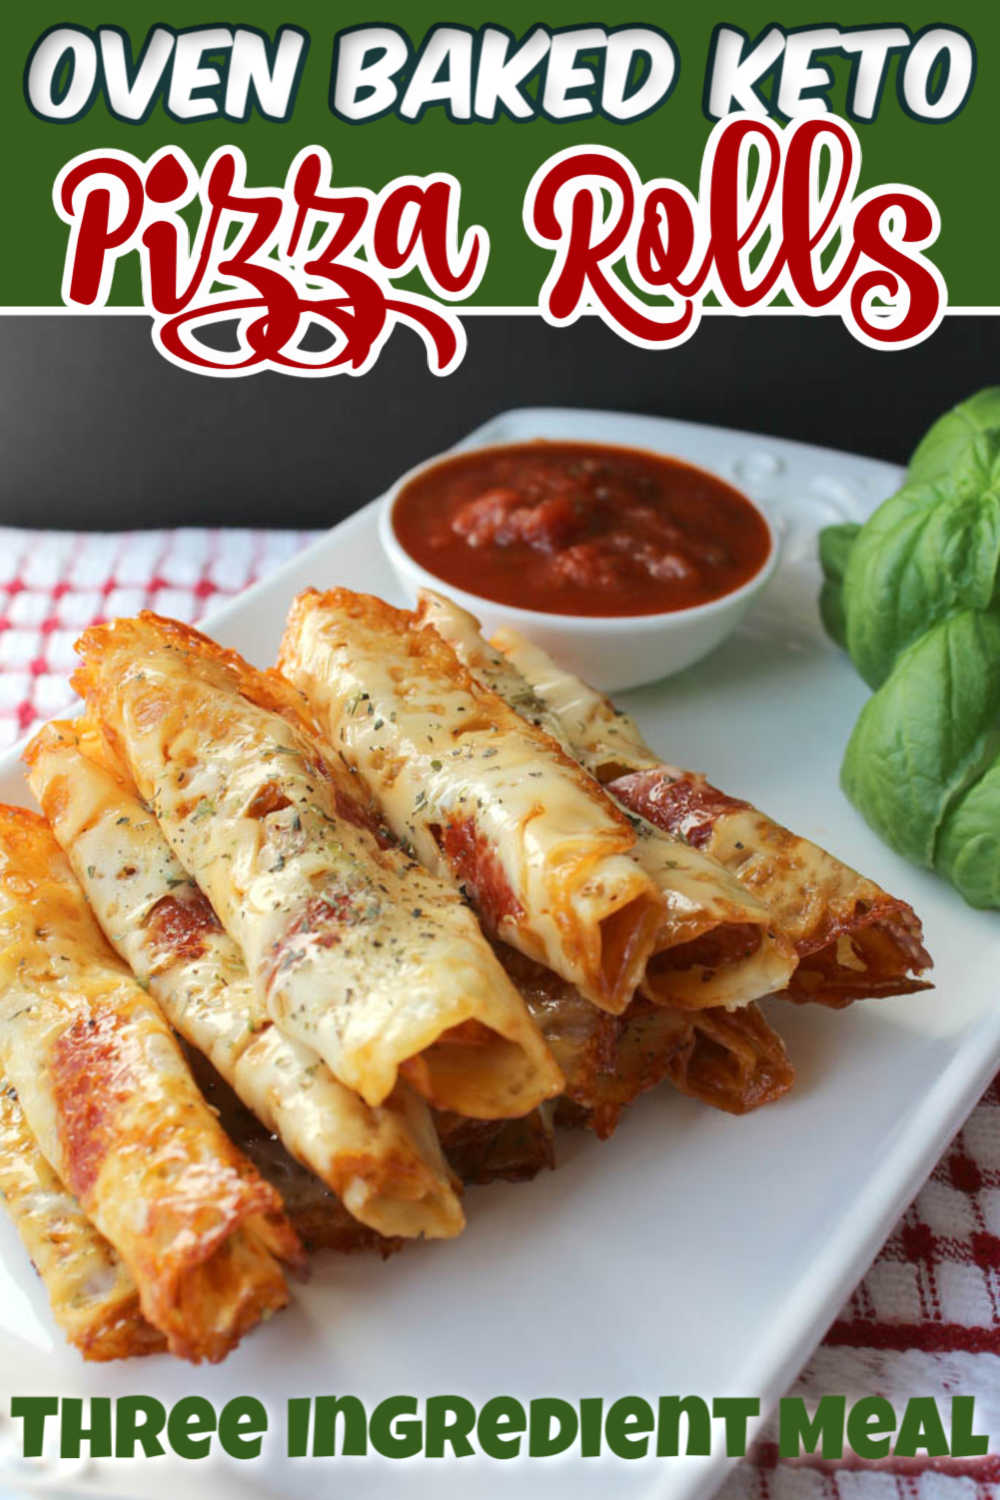 Fresh baked keto-friendly pizza rolls only use three ingredients but taste like a million bucks! It is super easy to bake these slices of mozzarella cheese and topped with pizza toppings! No need to fall off your diet during game day party snacks! #keto #pizzarolls #gameday